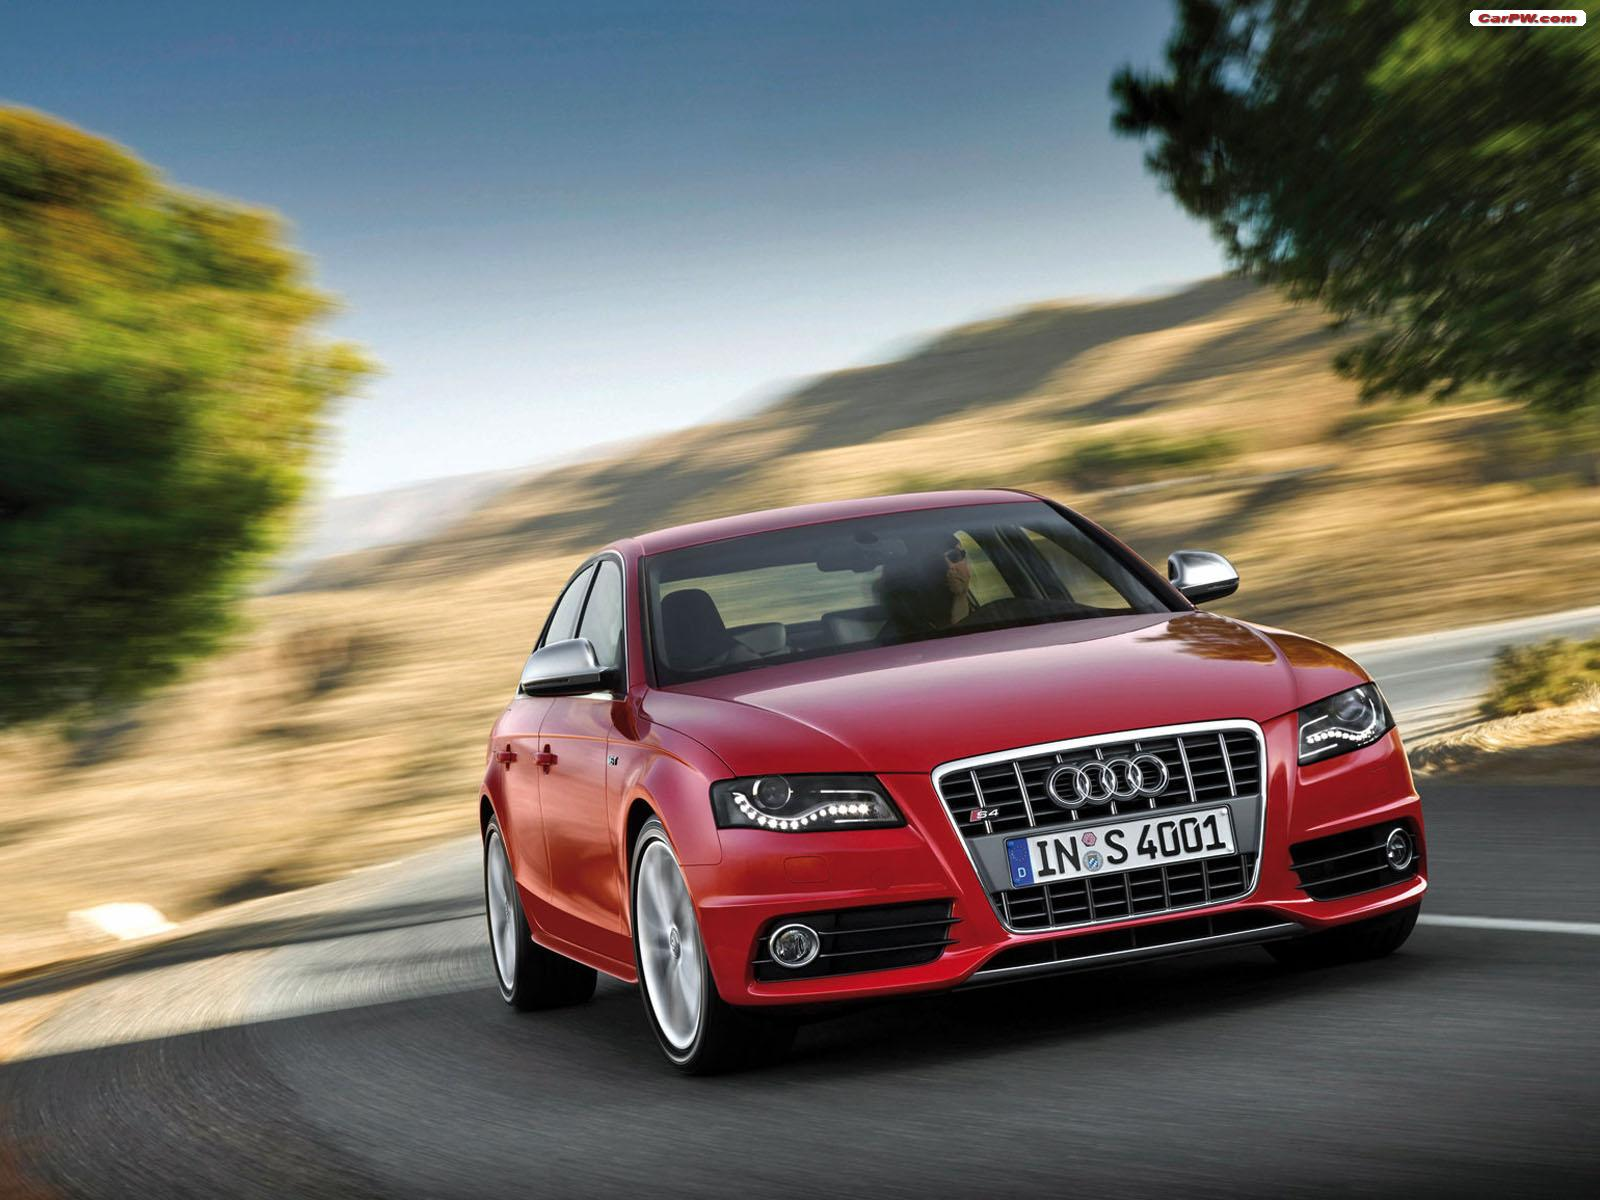 2009 Audi S4 HD Wallpapers High Definition Pictures 1600x1200